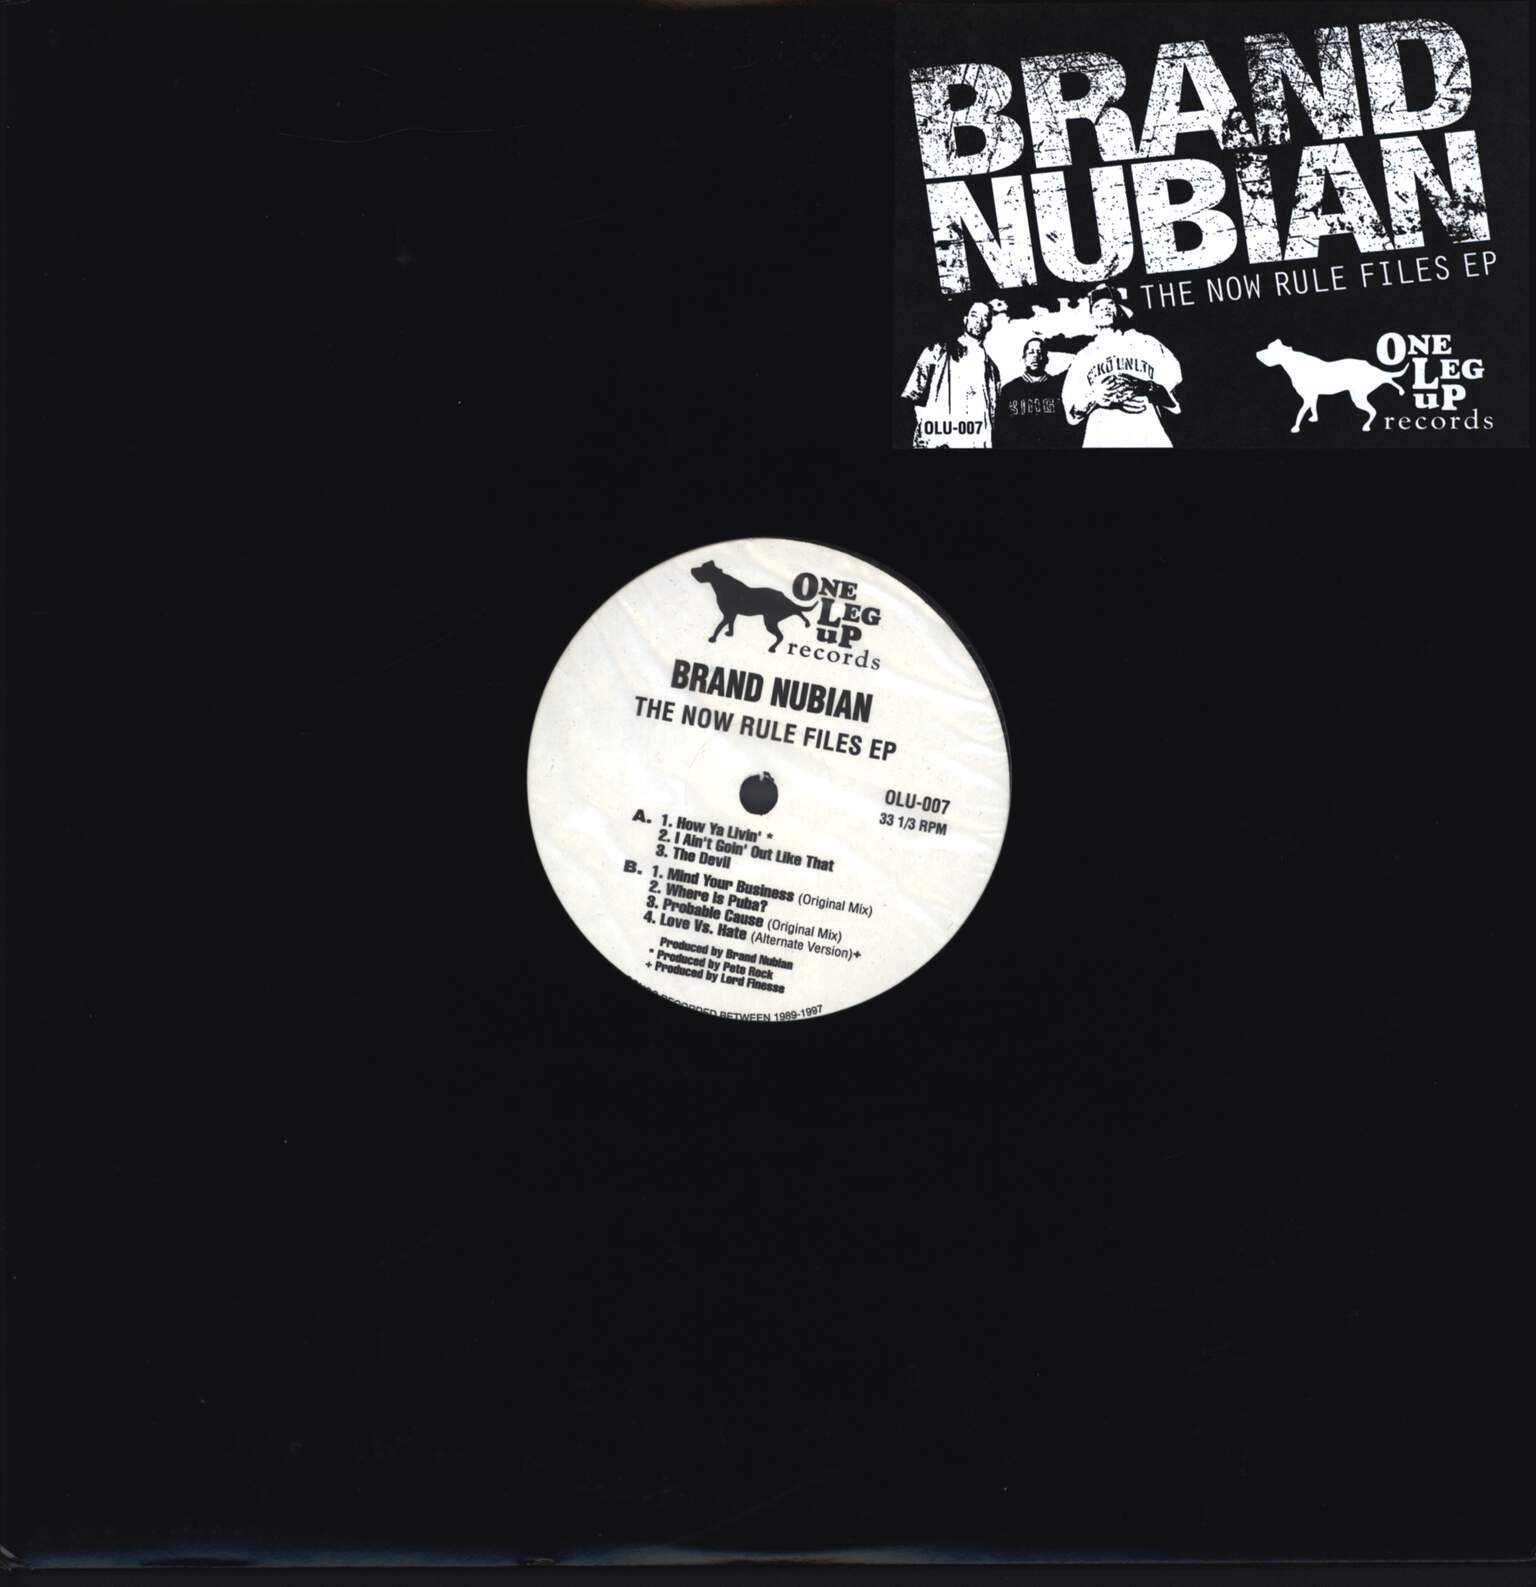 "Brand Nubian: The Now Rule Files EP, 12"" Maxi Single (Vinyl)"